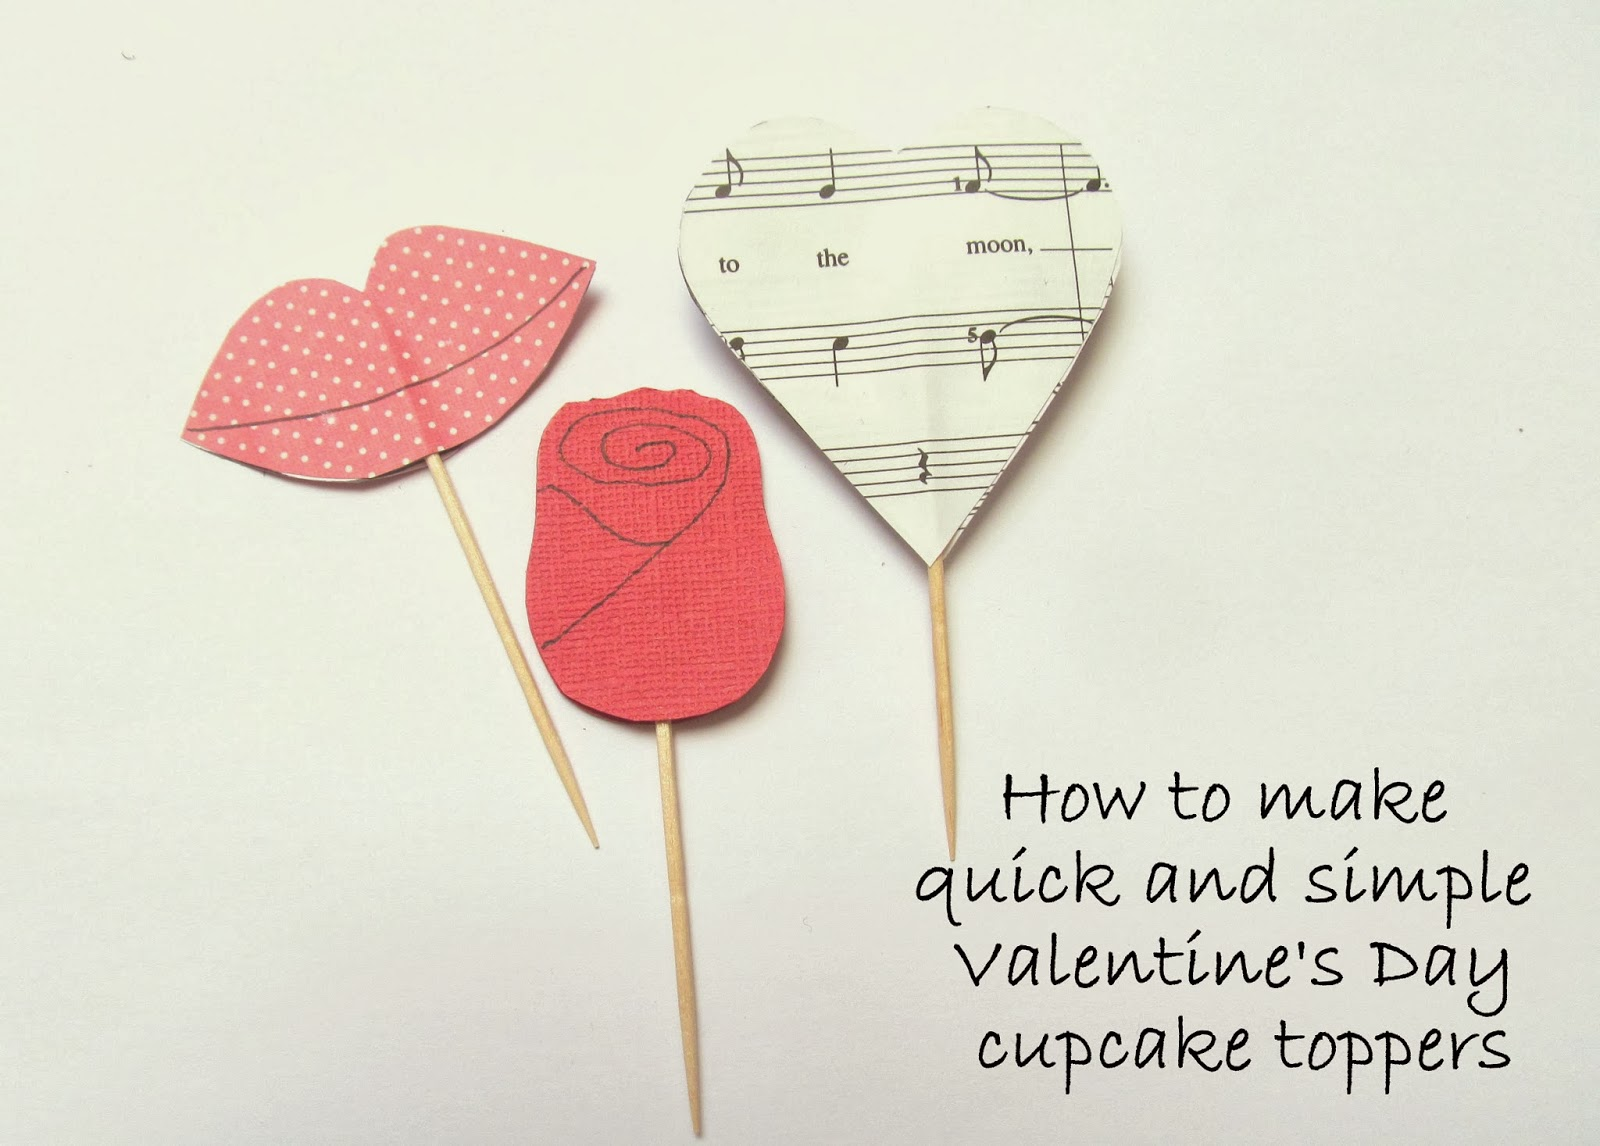 Valentine cupcake topper tutorials by Pink Flamingo Handcrafting